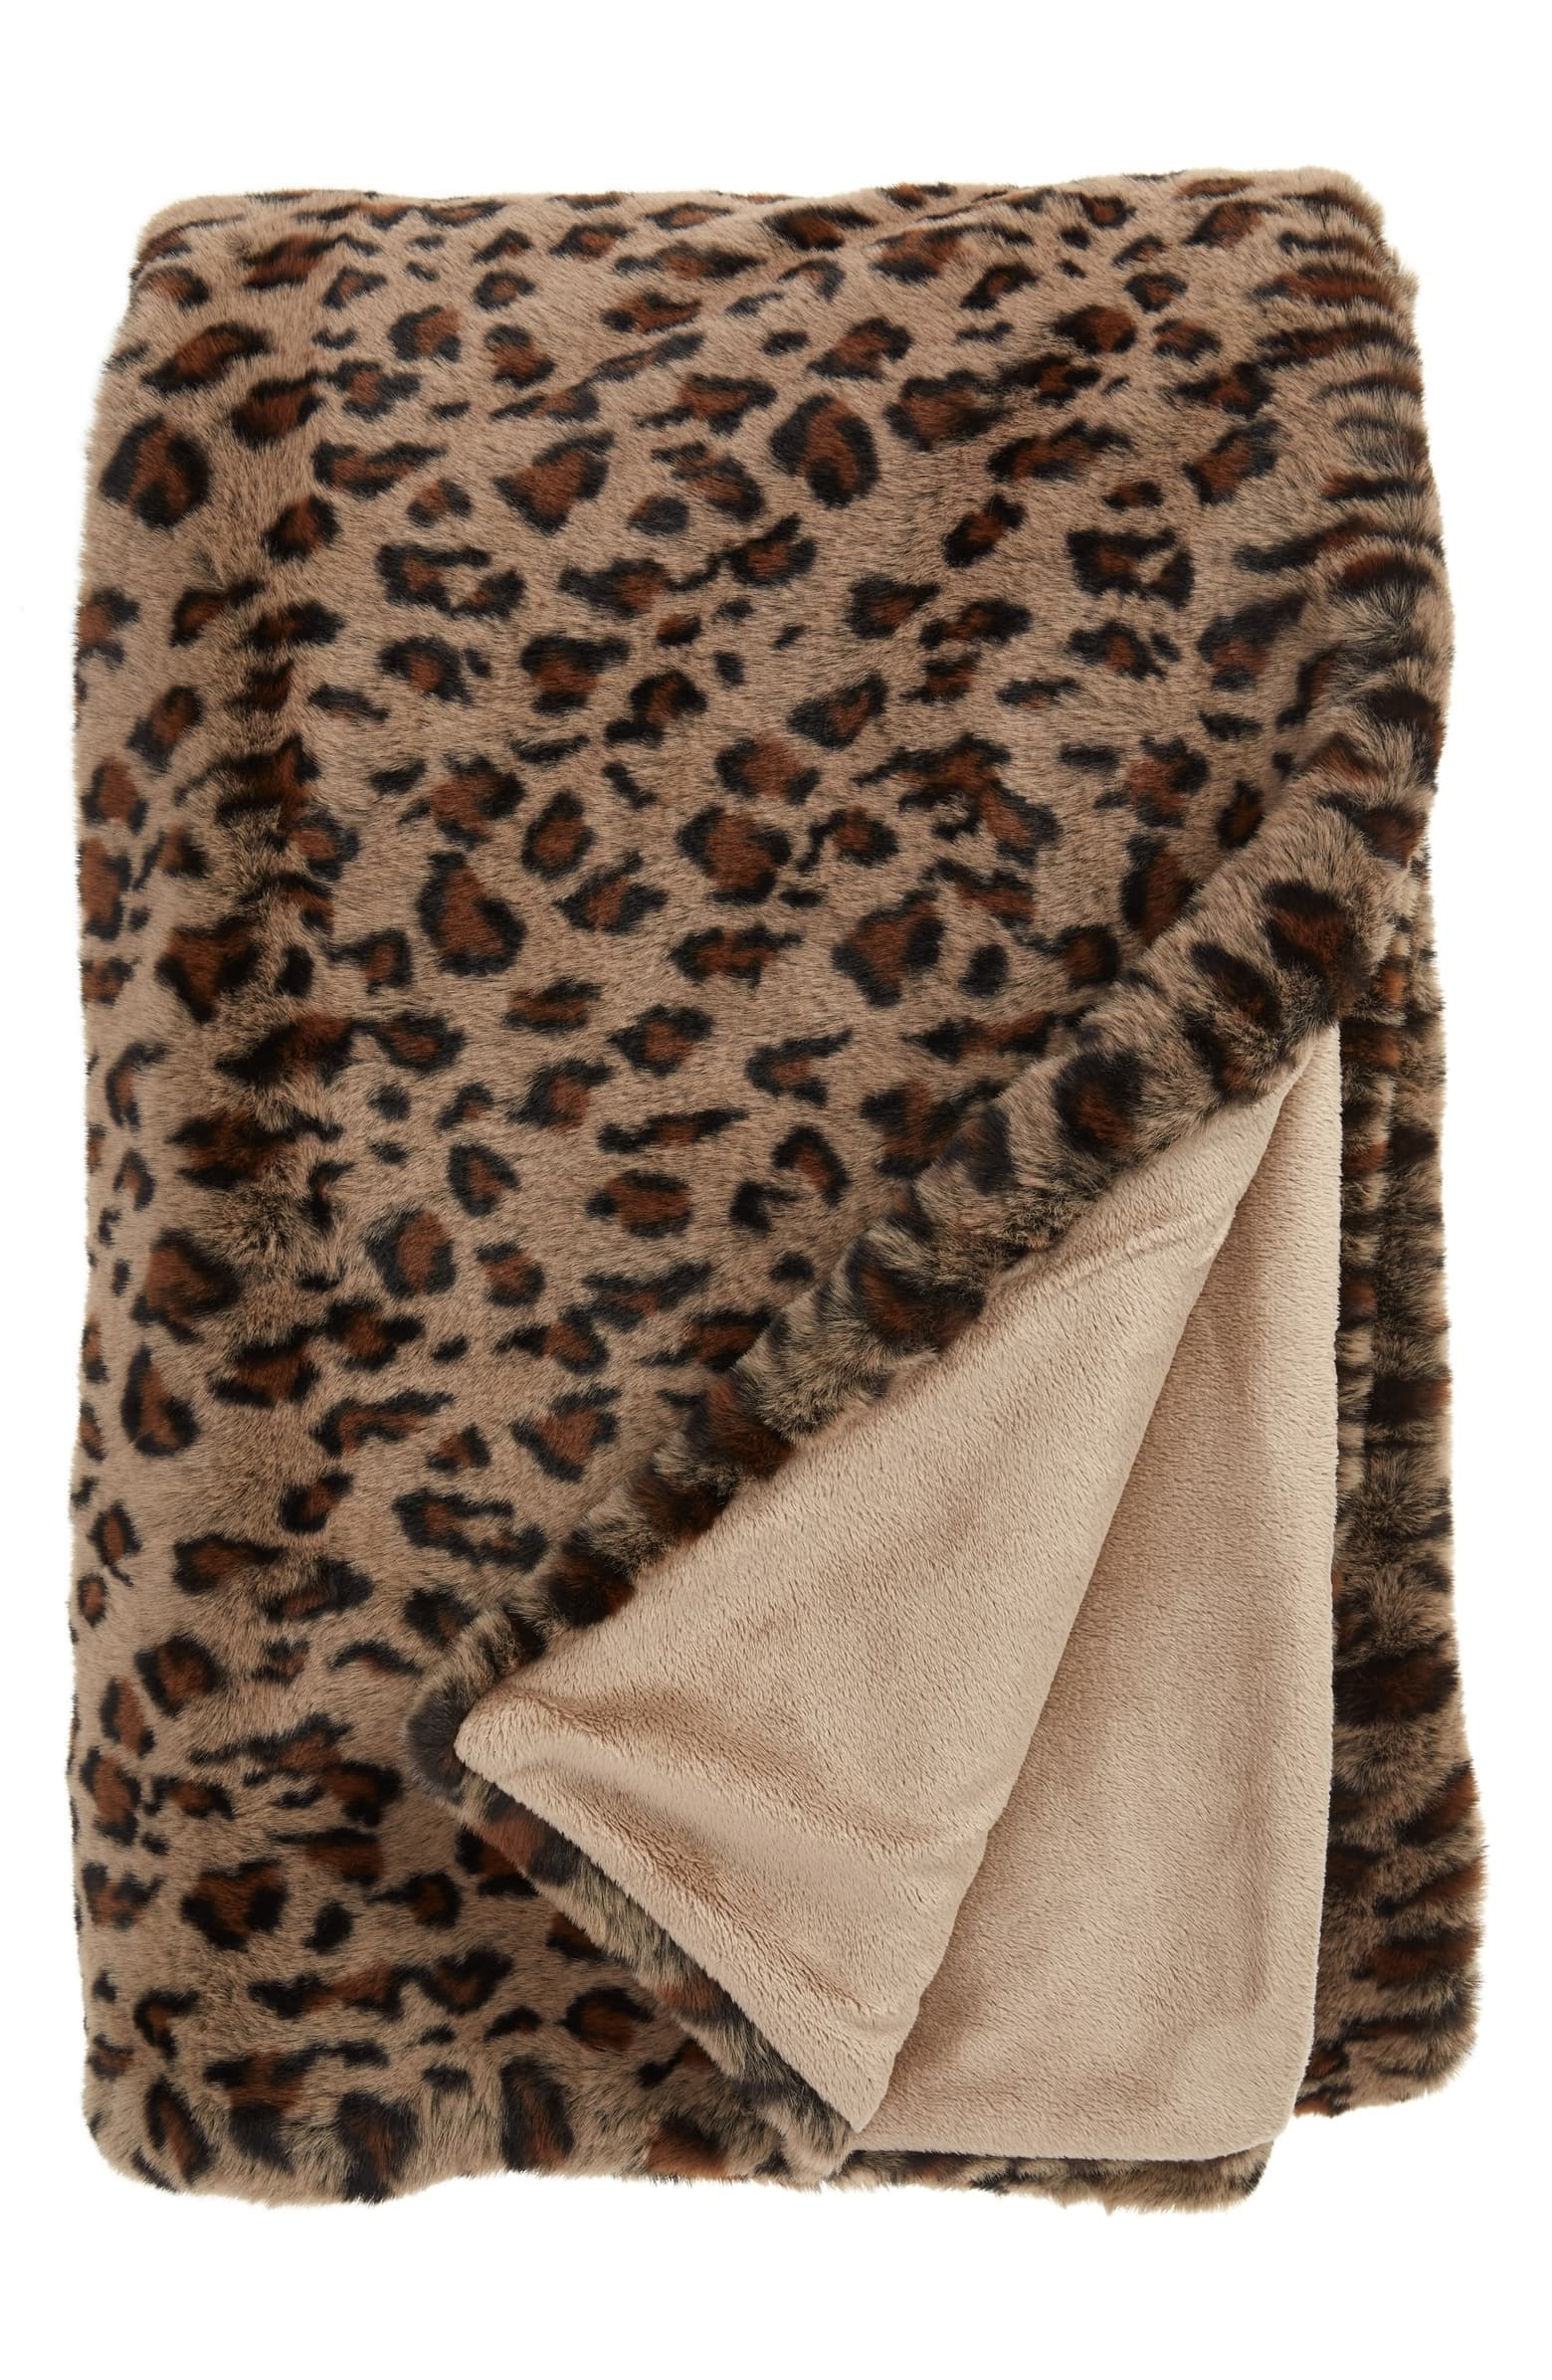 The plush throw blanket with a brown leopard print all over one side and the corner flipped to show the lighter color brown inside